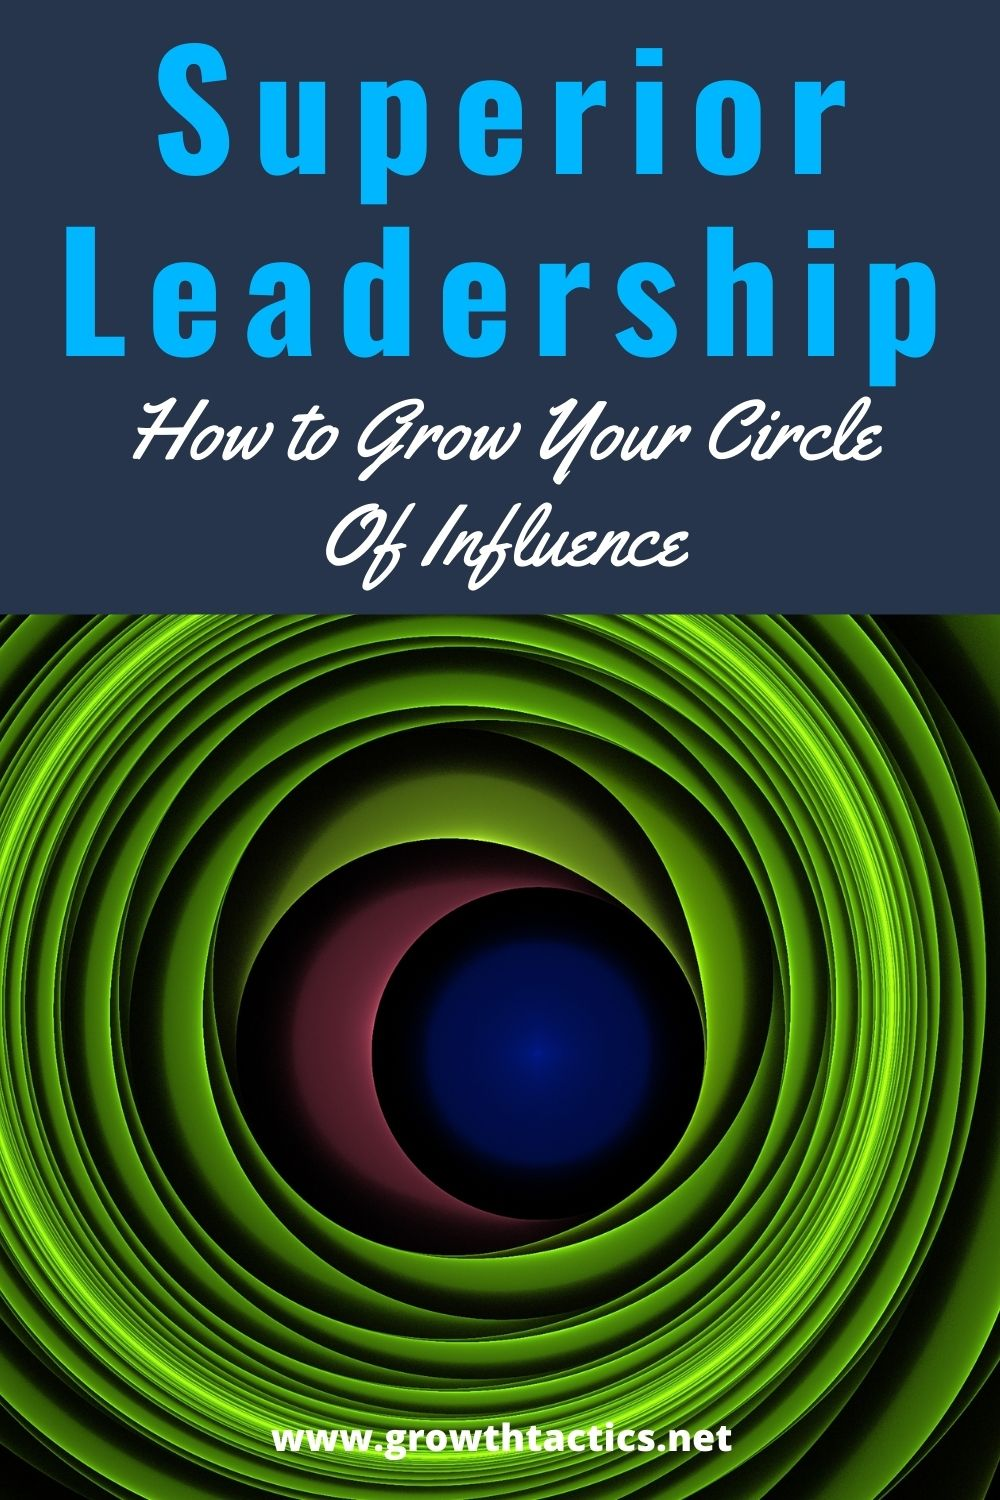 Pinterest image for 9 Tips Grow Your Circle of Influence and Be a Better Leader article.